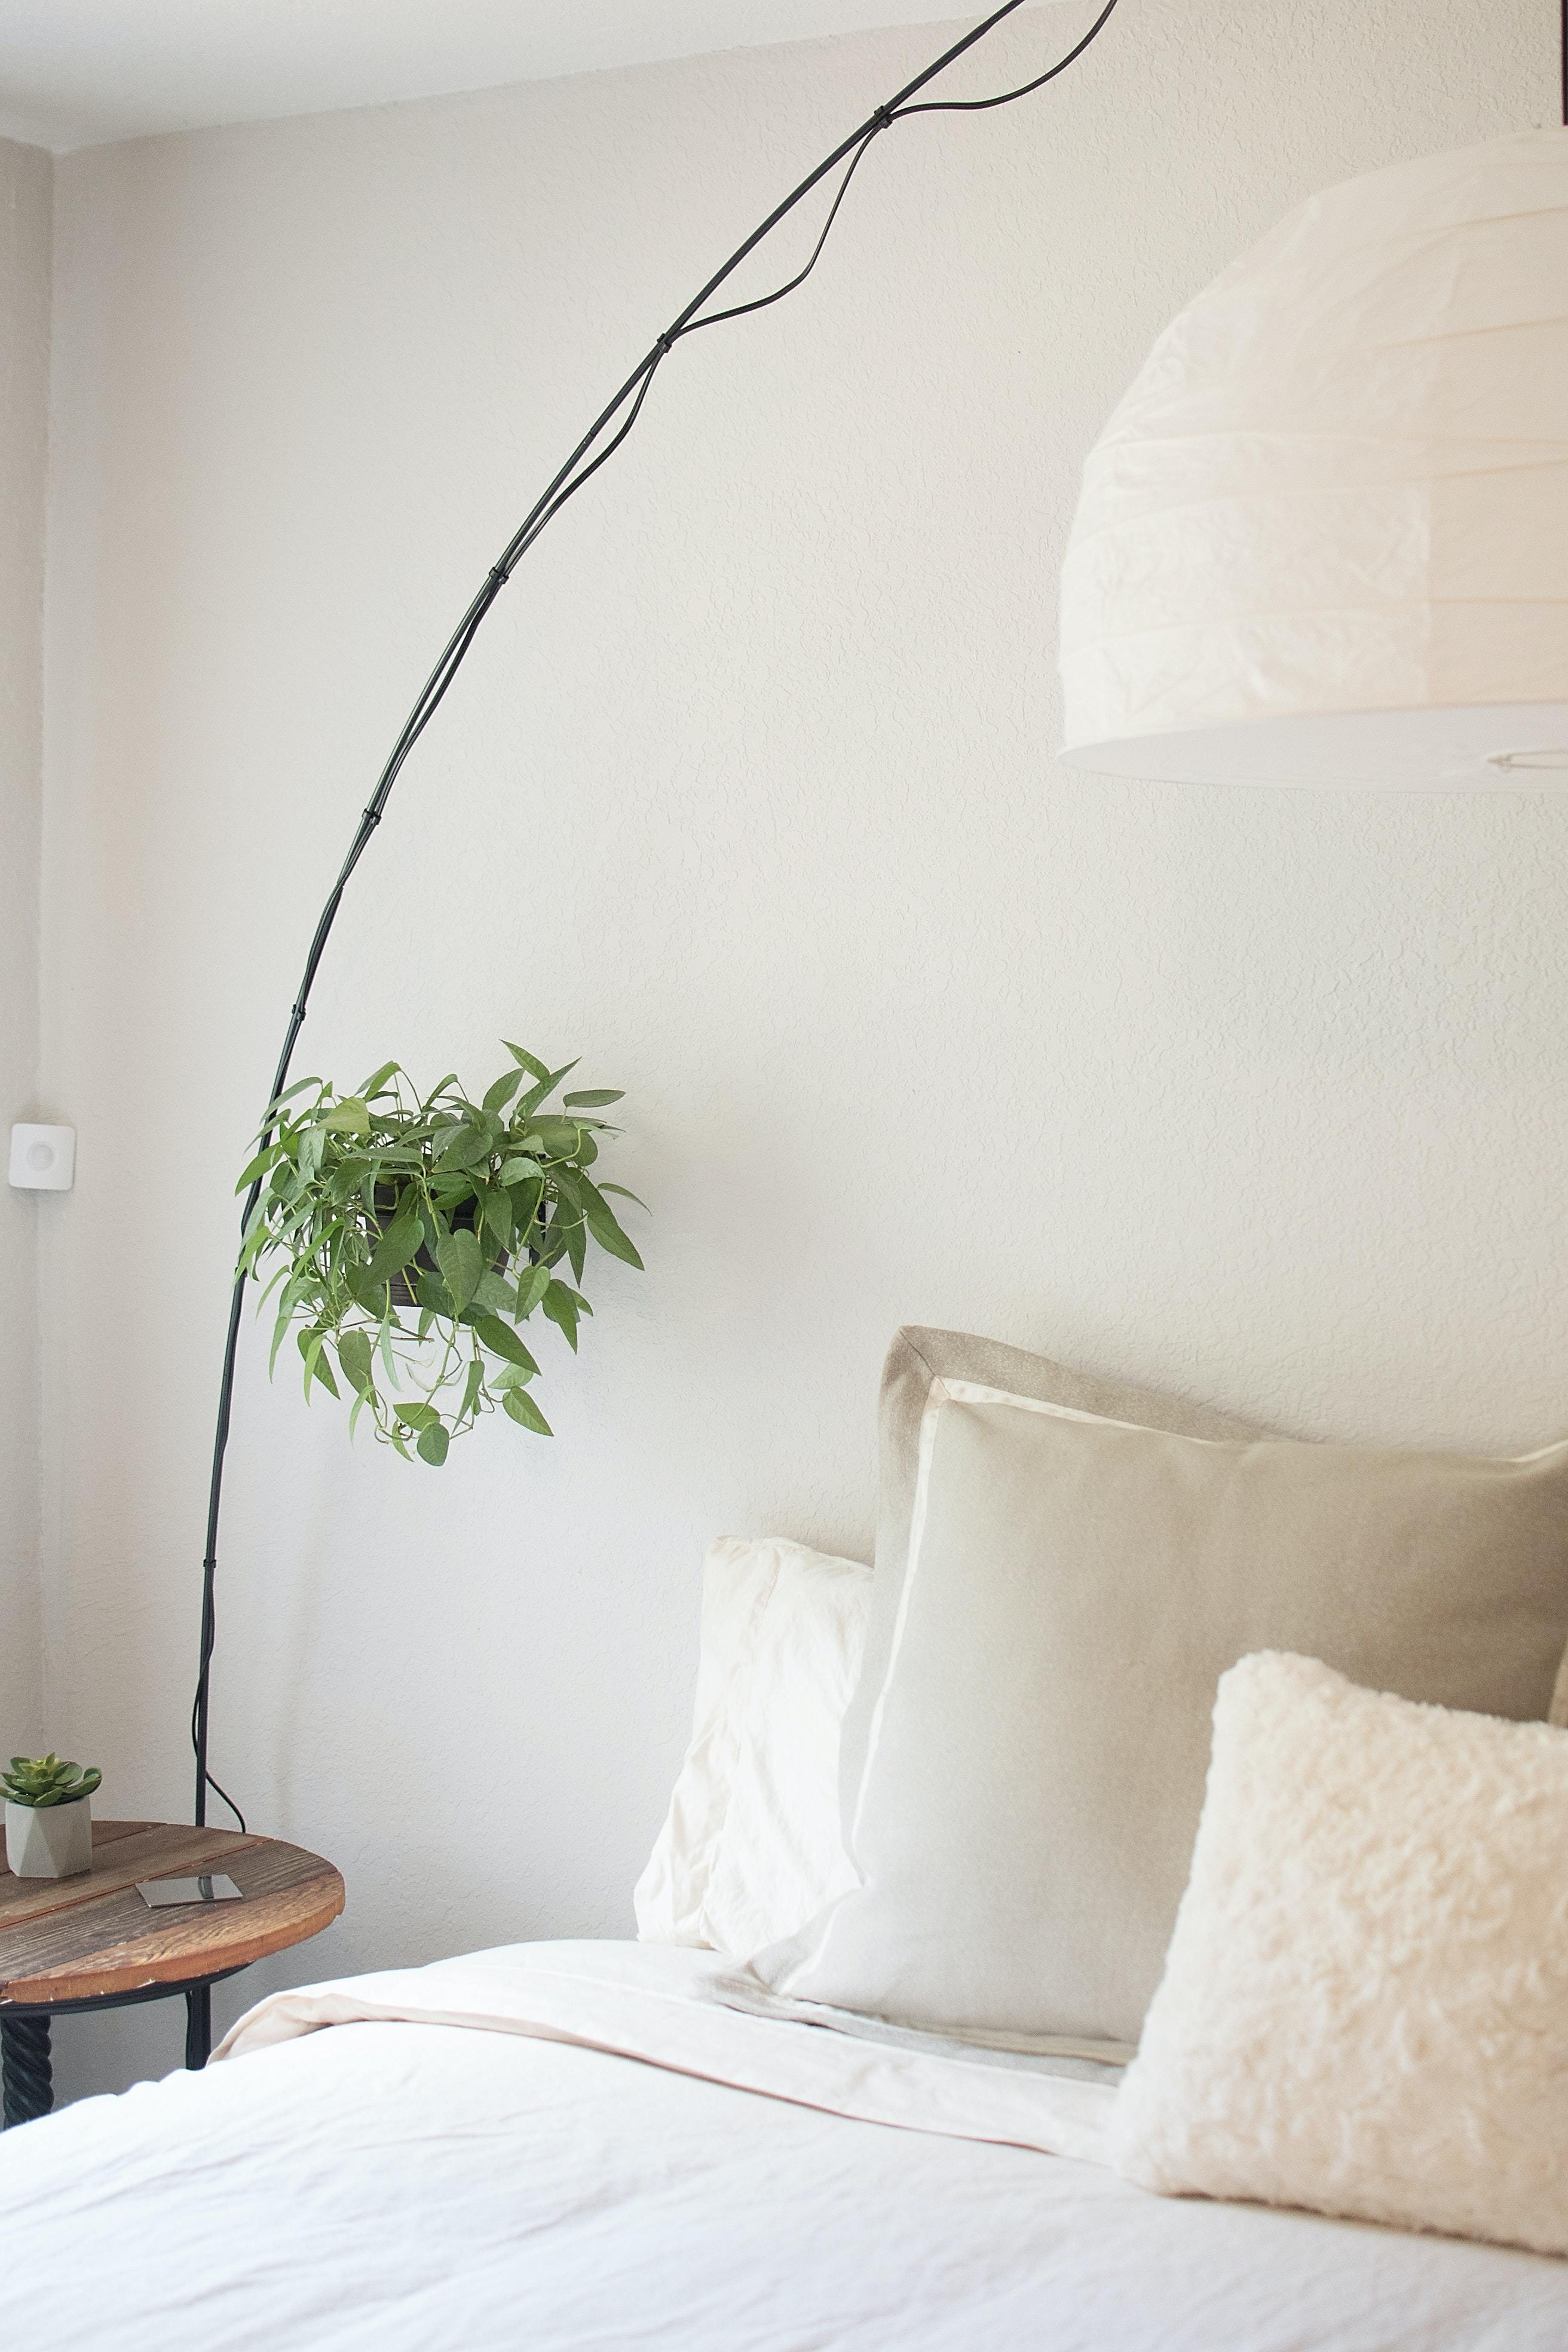 white bed with a plant next to it